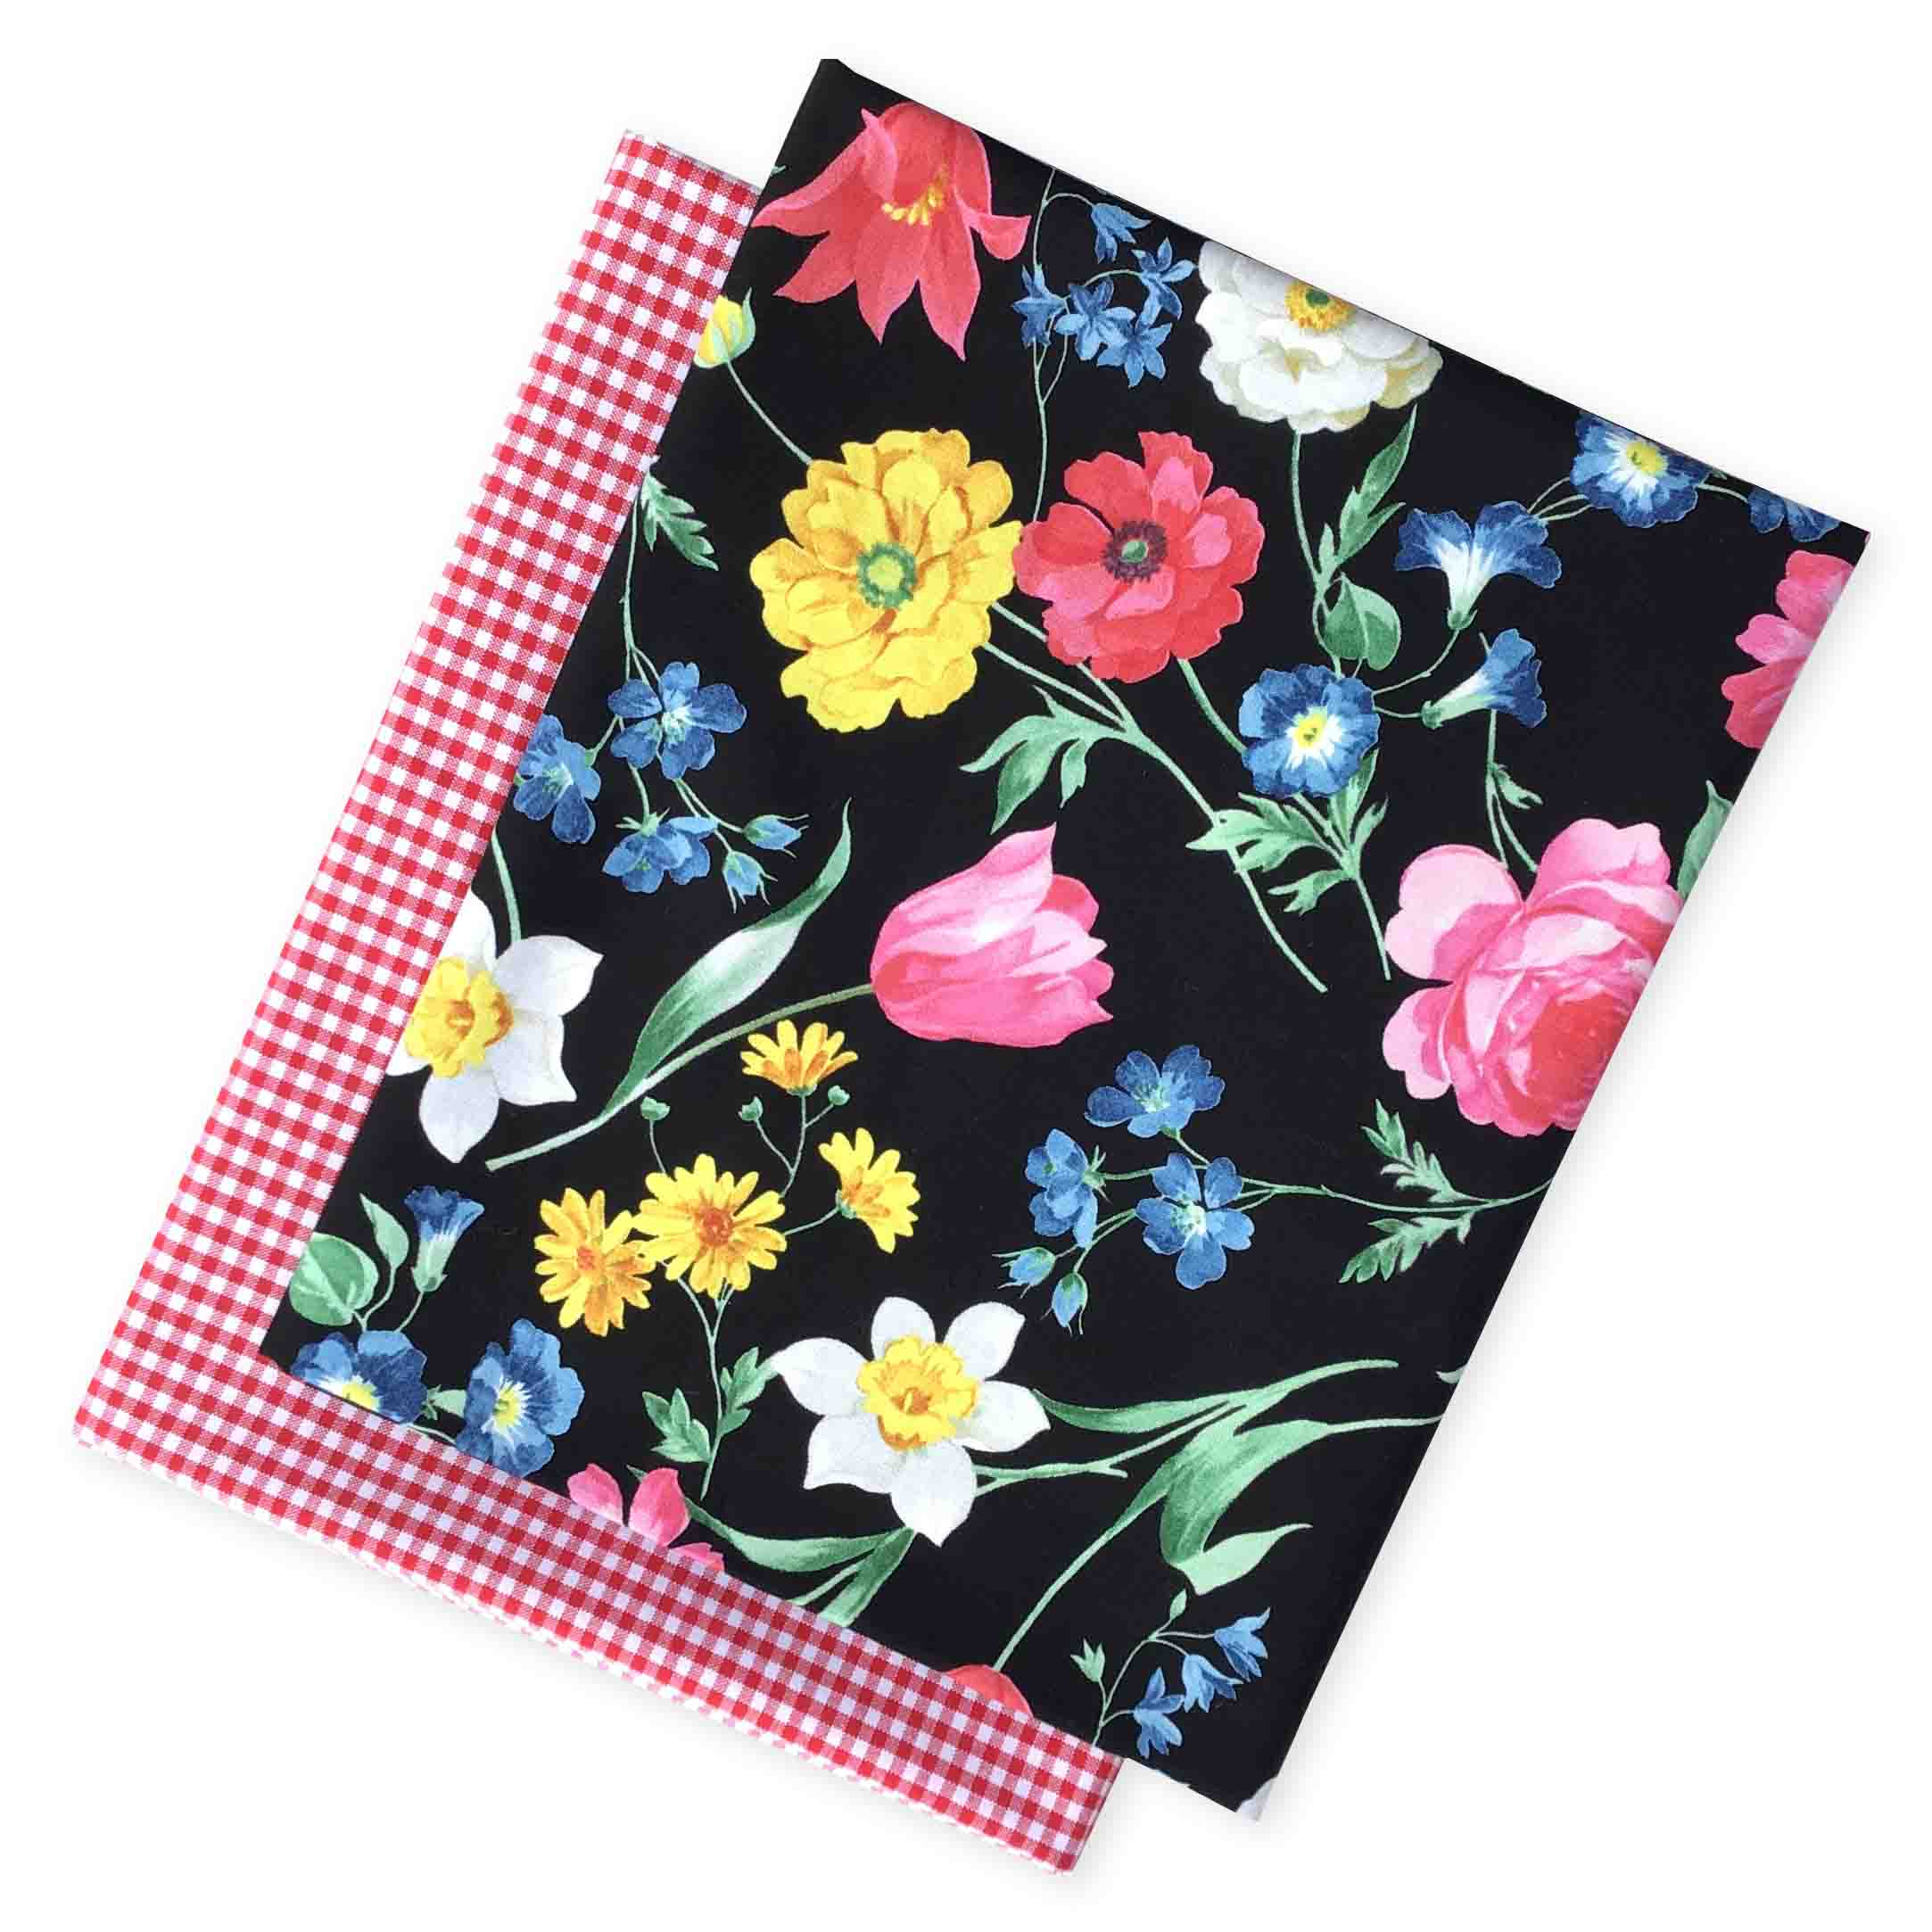 Afternoon Picnic Fabric Pack by Nancy Zieman Productions